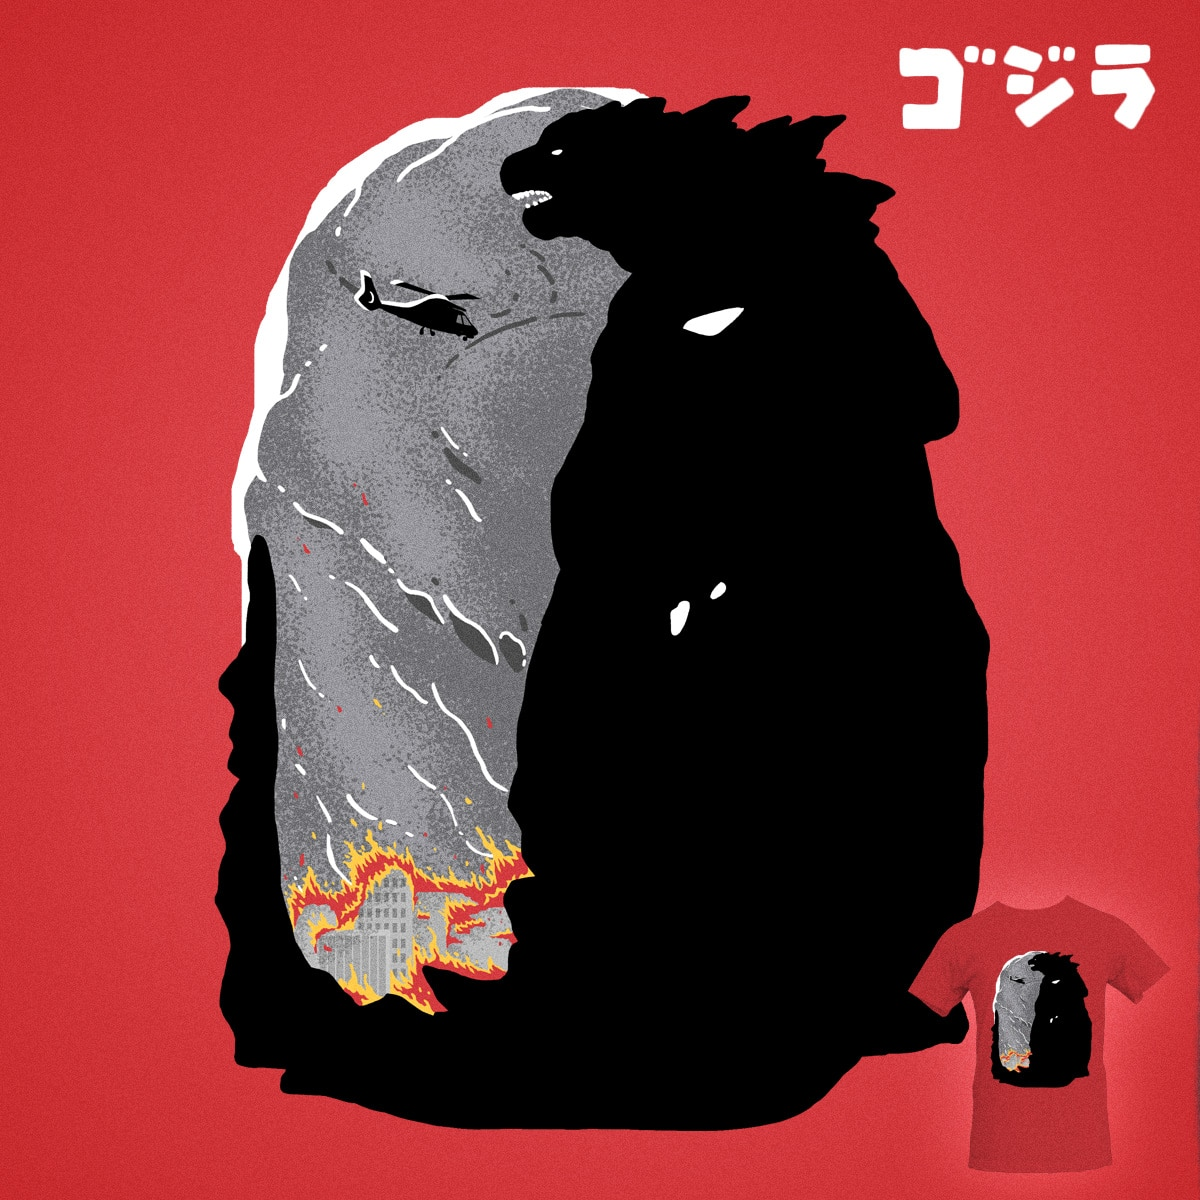 Face to face by nerrik on Threadless